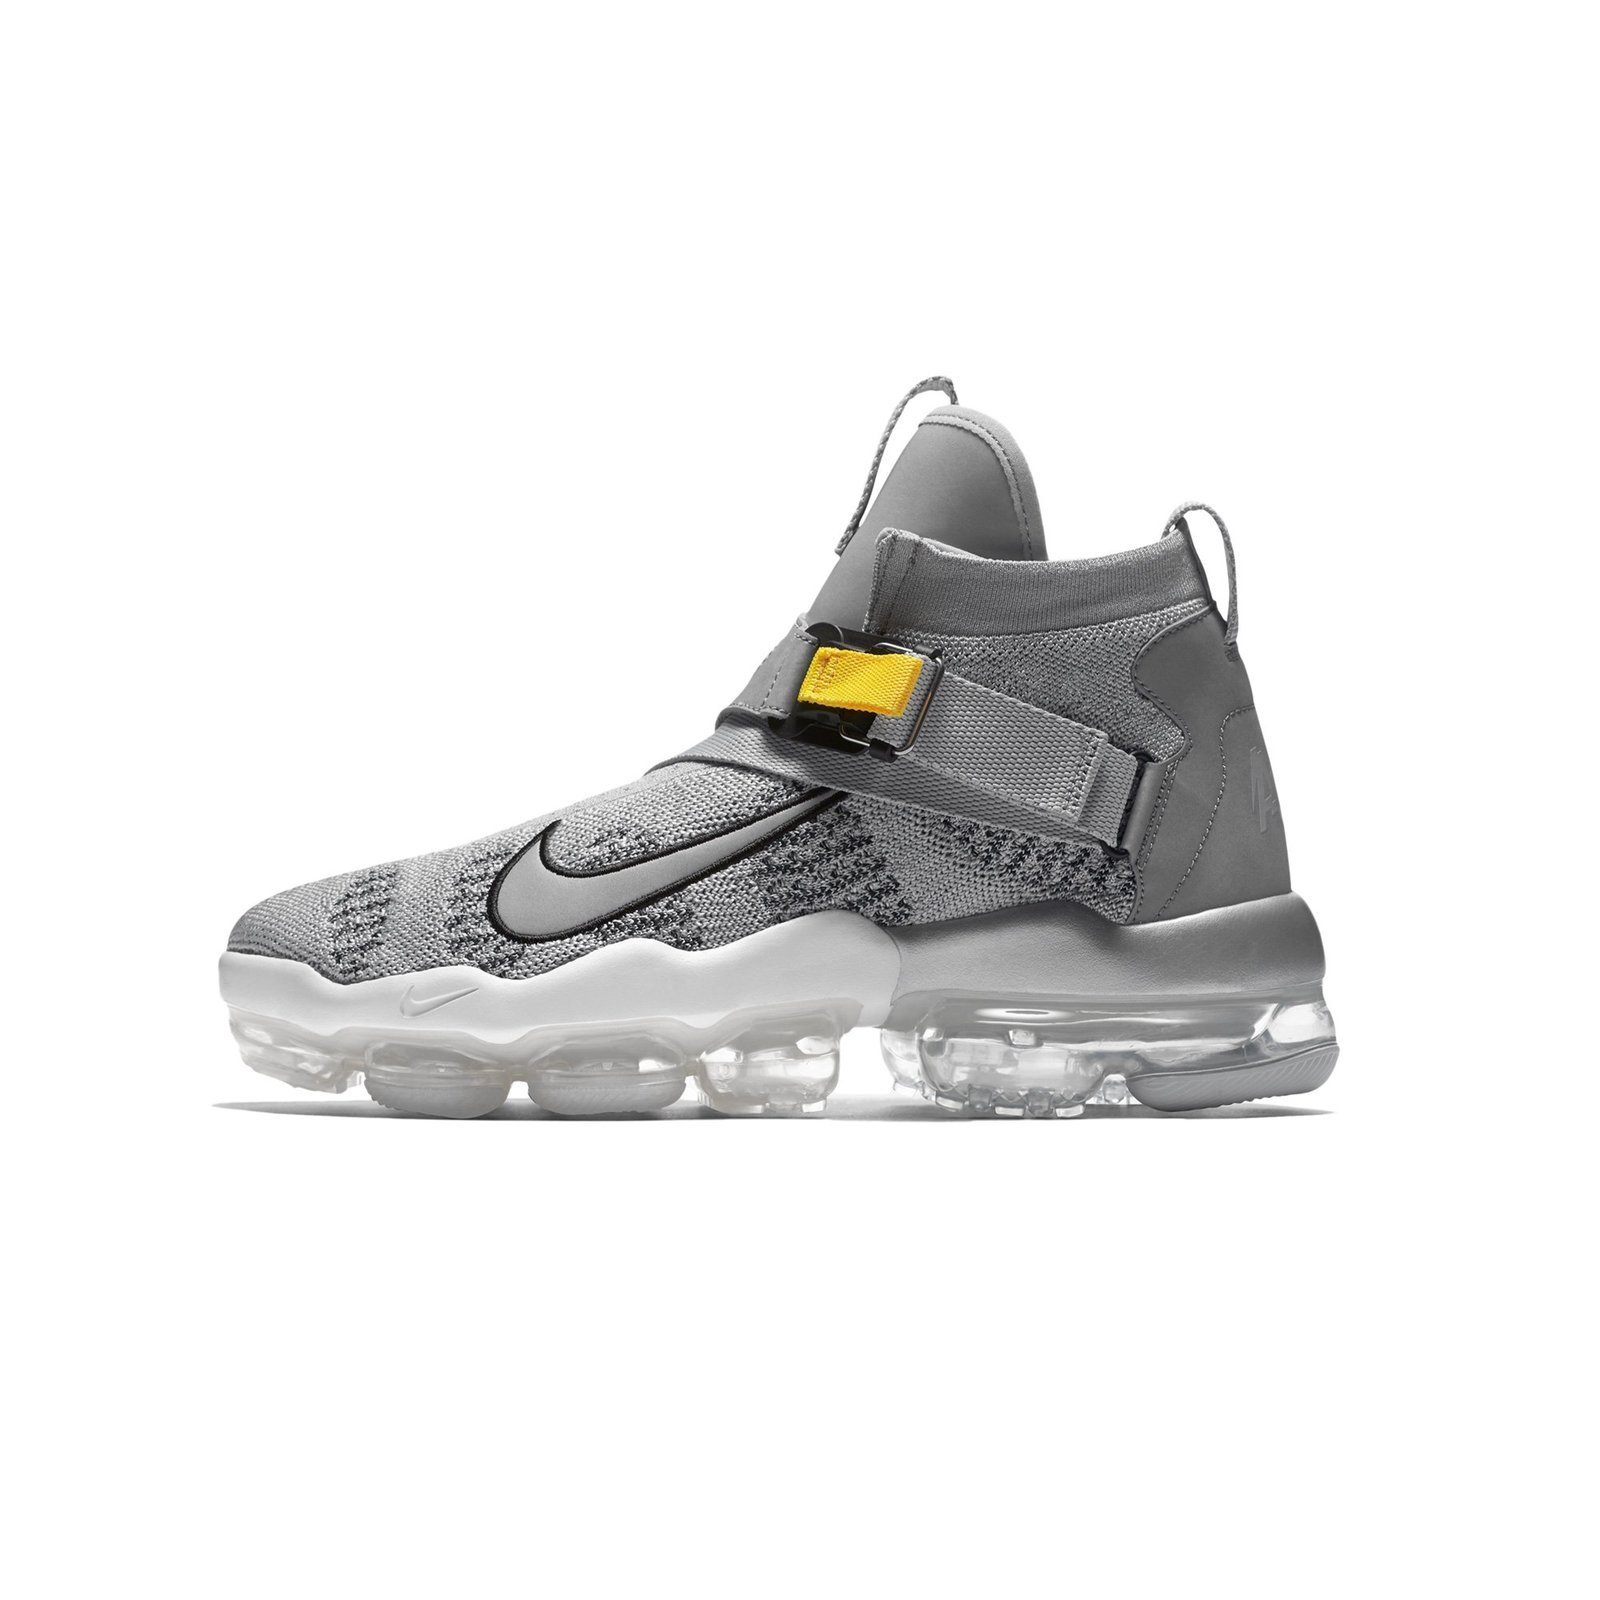 6cff30393c83 Ao3241 001 1 2048x. Ao3241 001 1 2048x. Previous. Nike Air VaporMax Premier  Flyknit (Wolf Grey  Metallic Silver Black) Men ...